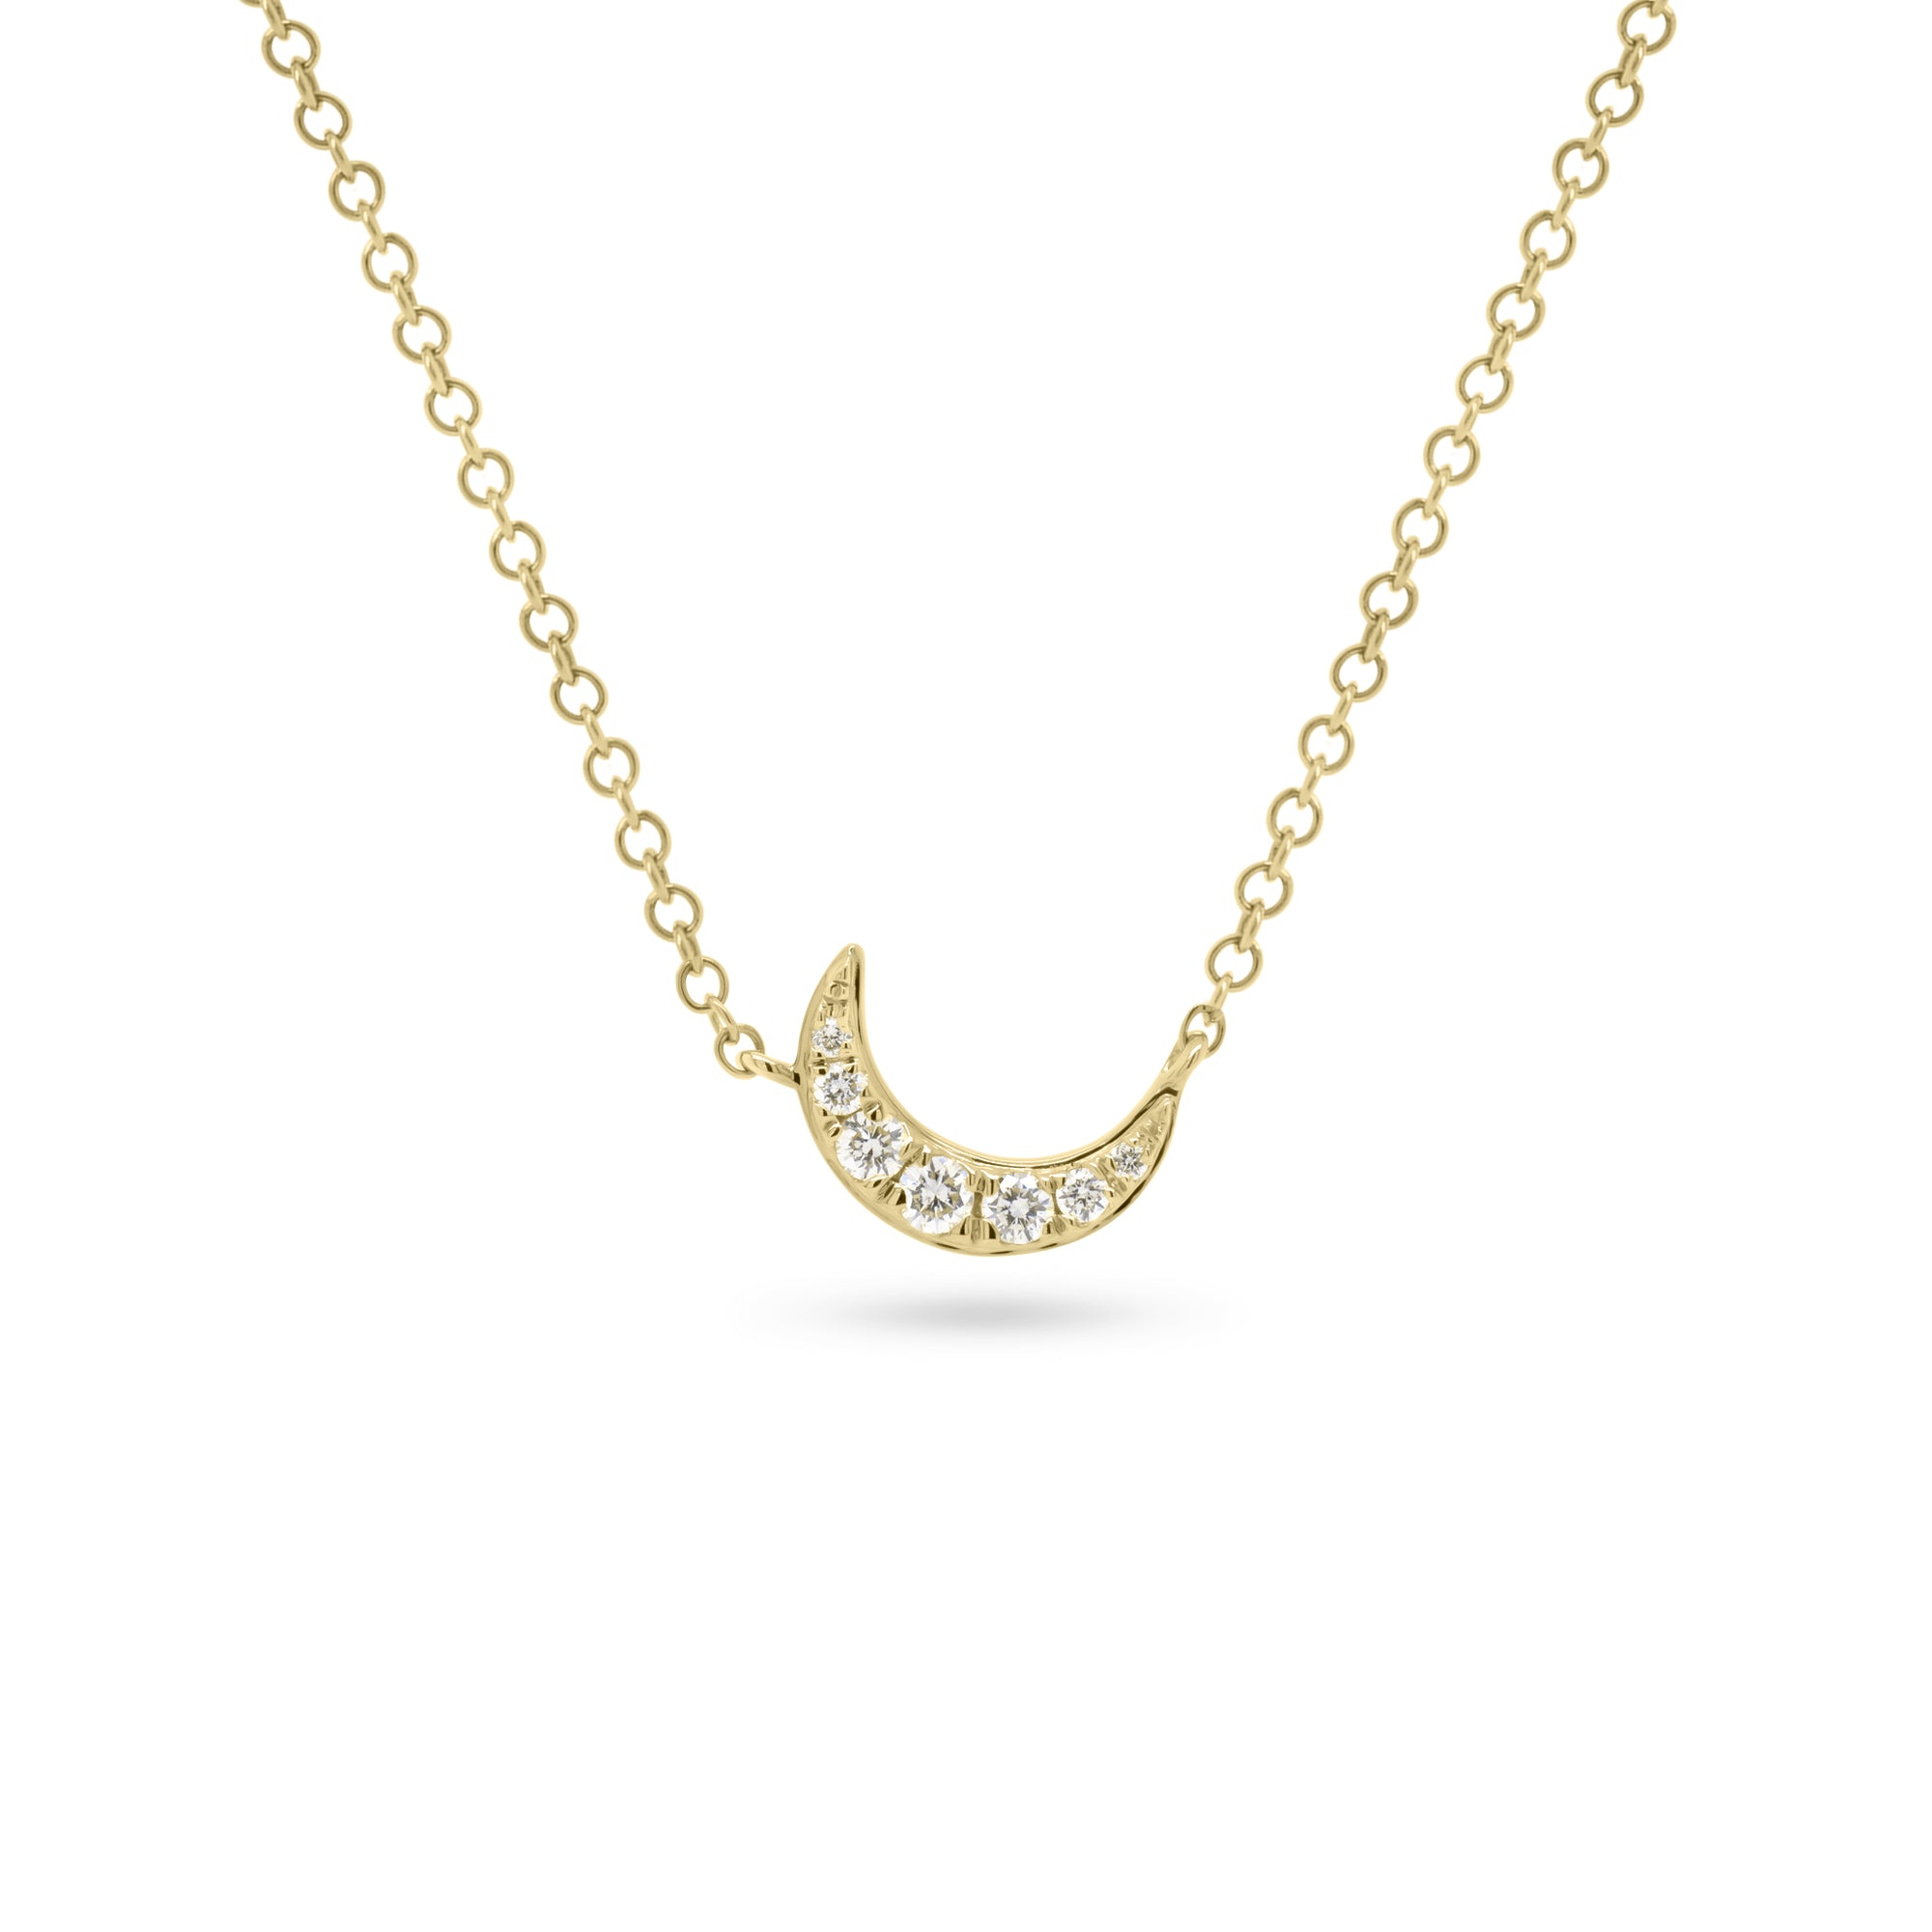 Petite Diamond Crescent Moon Necklace